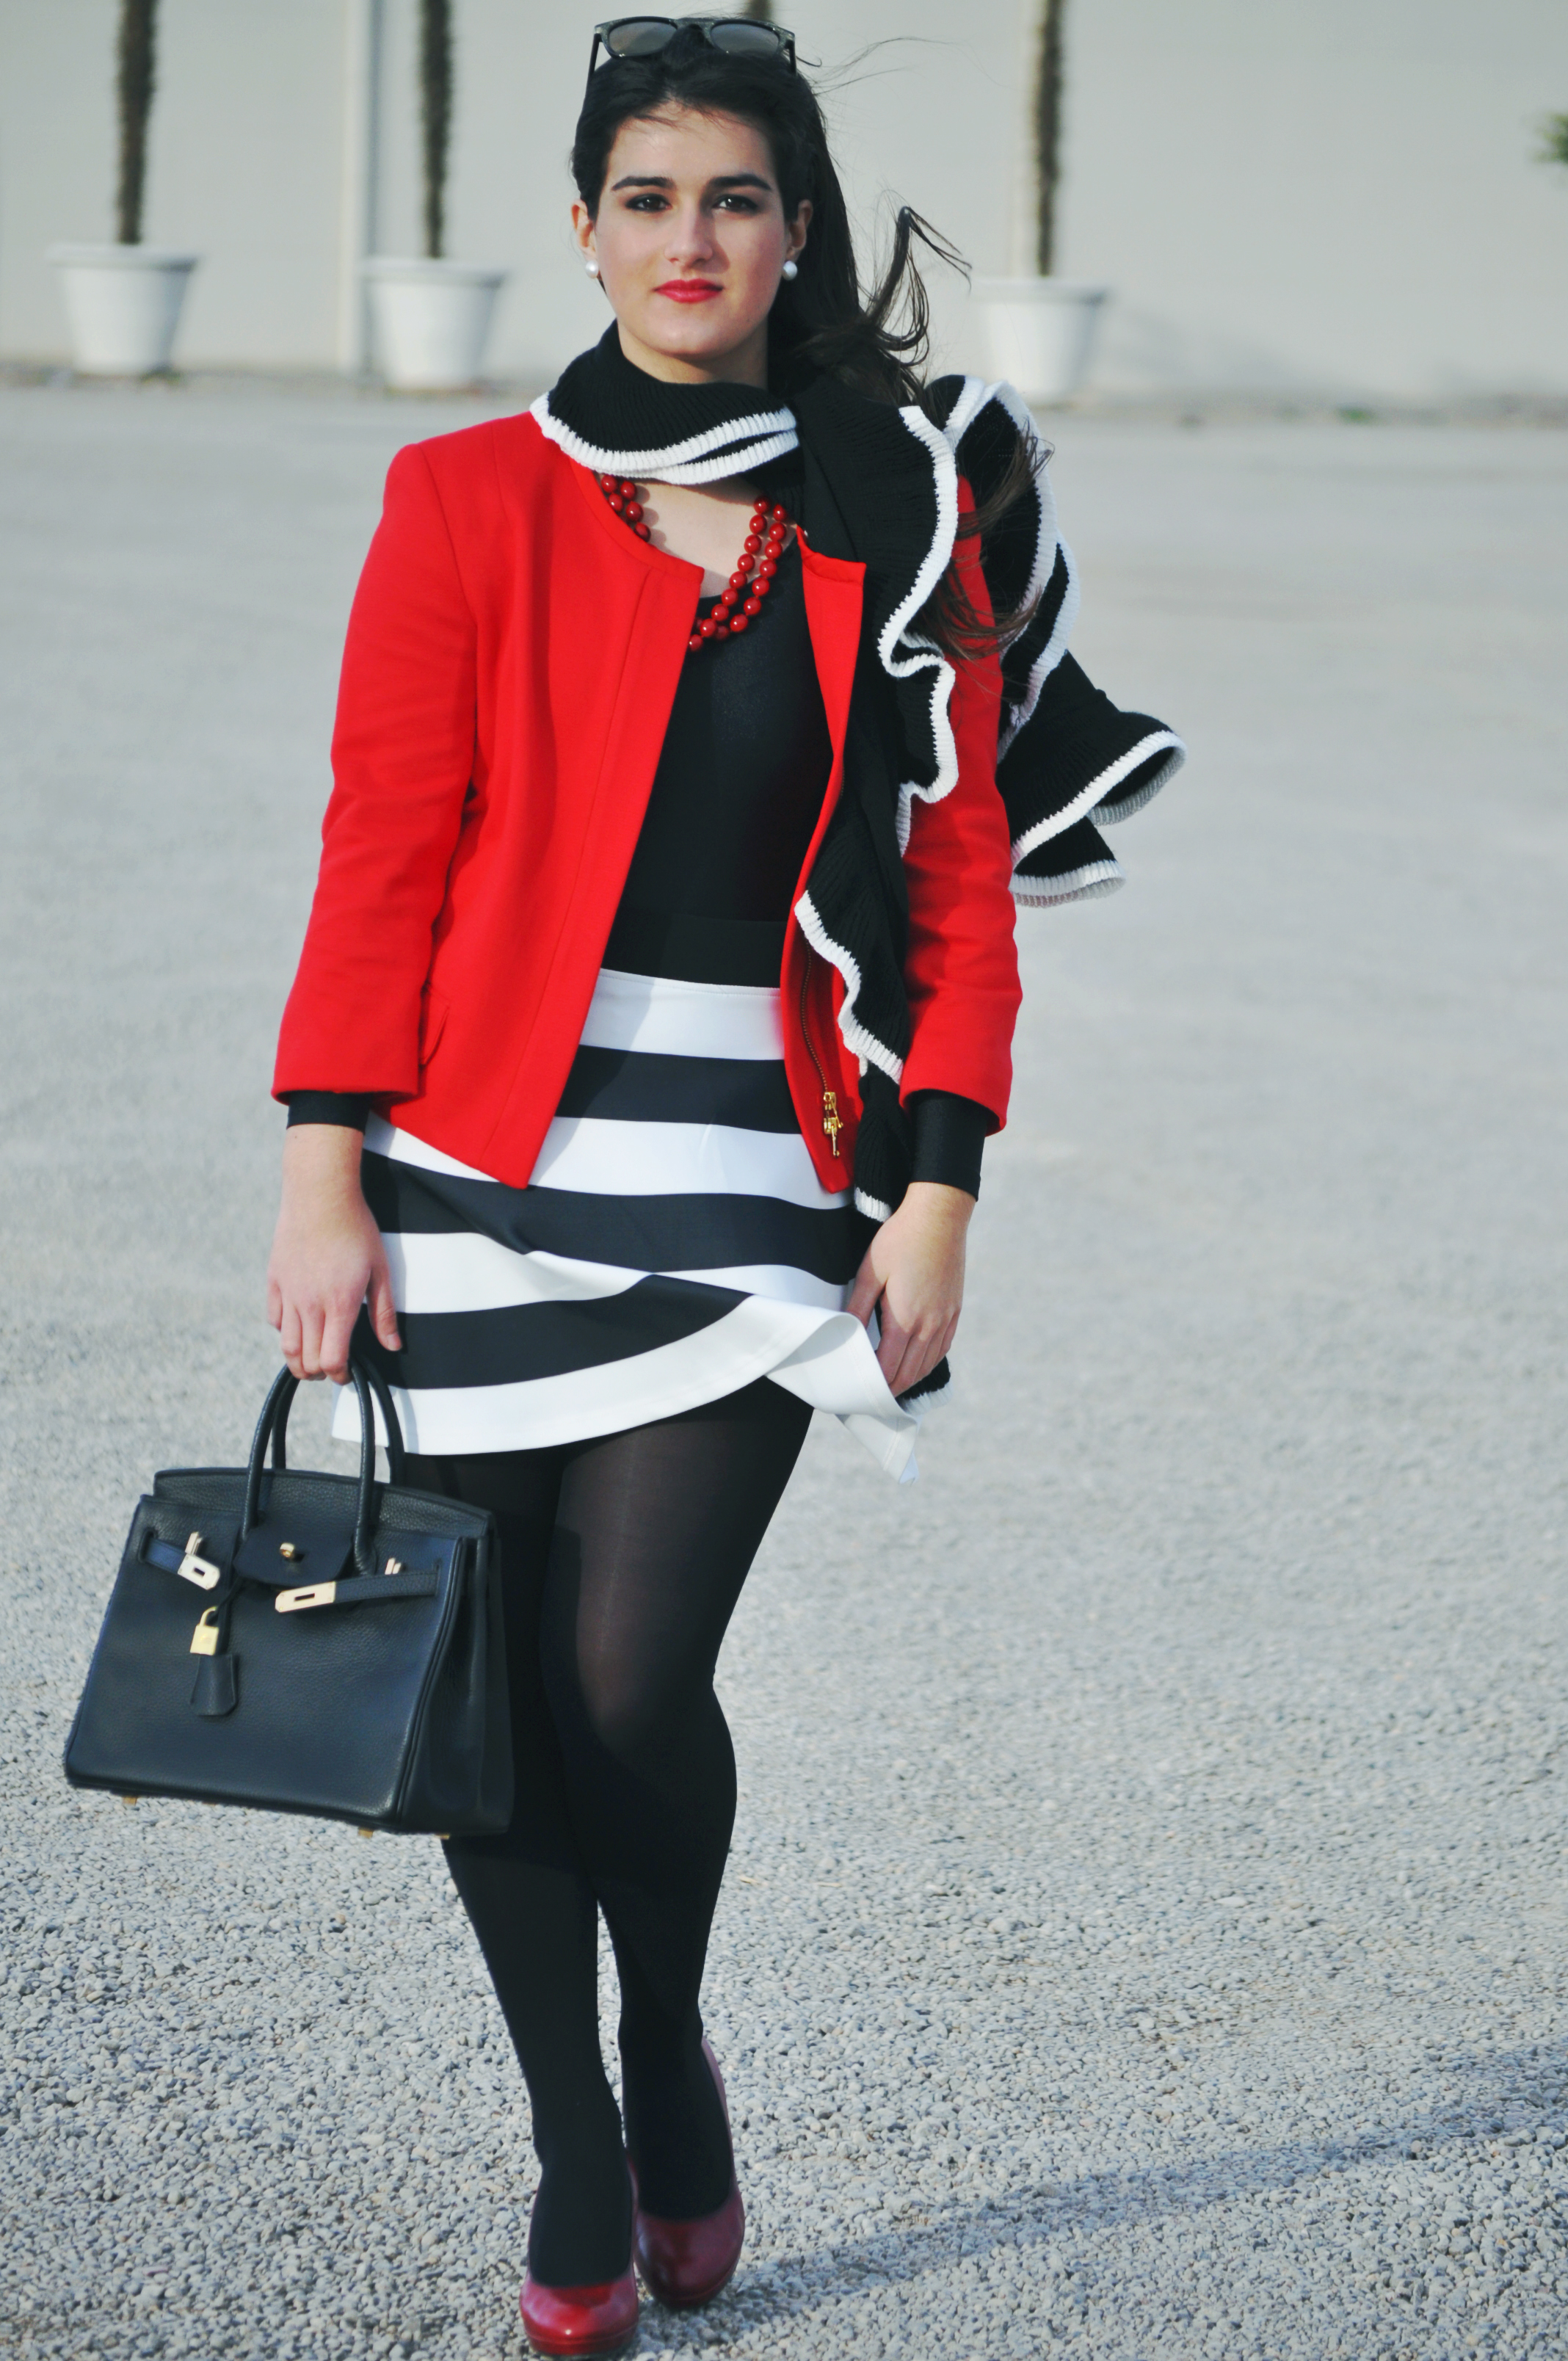 hermes birkin black fashion blogger, spanish fashion blogger mini one car, carrera by jimmy choo sunglasses glitter, neoprene skirt stripes black and white, something fashion blog, mango red blazer, vintage